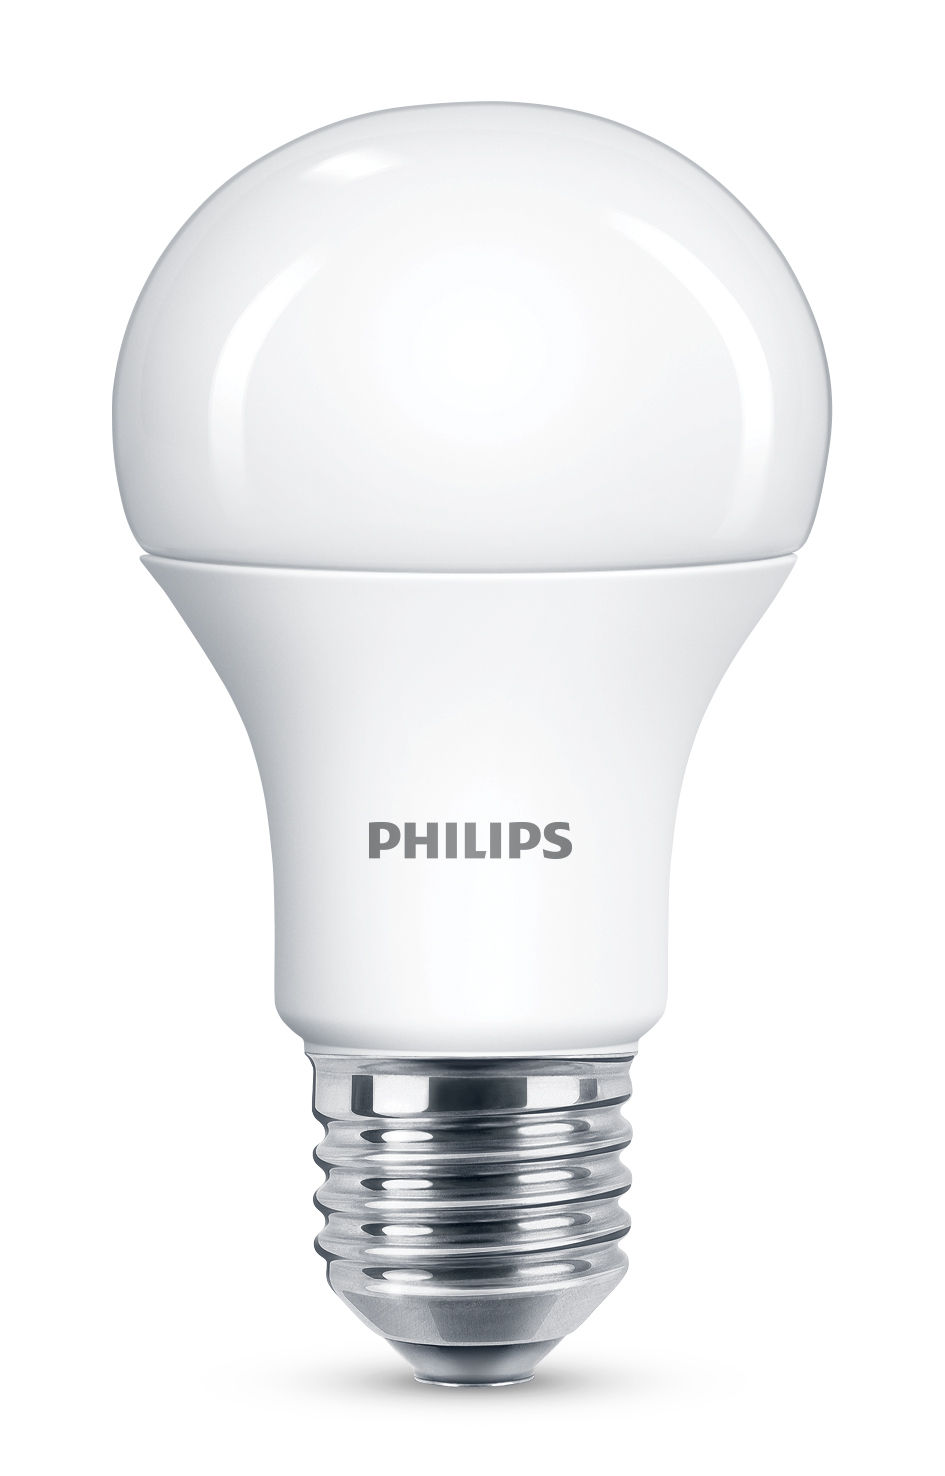 standard d polie e27 led bulb 13w 100w 1721 lumen. Black Bedroom Furniture Sets. Home Design Ideas